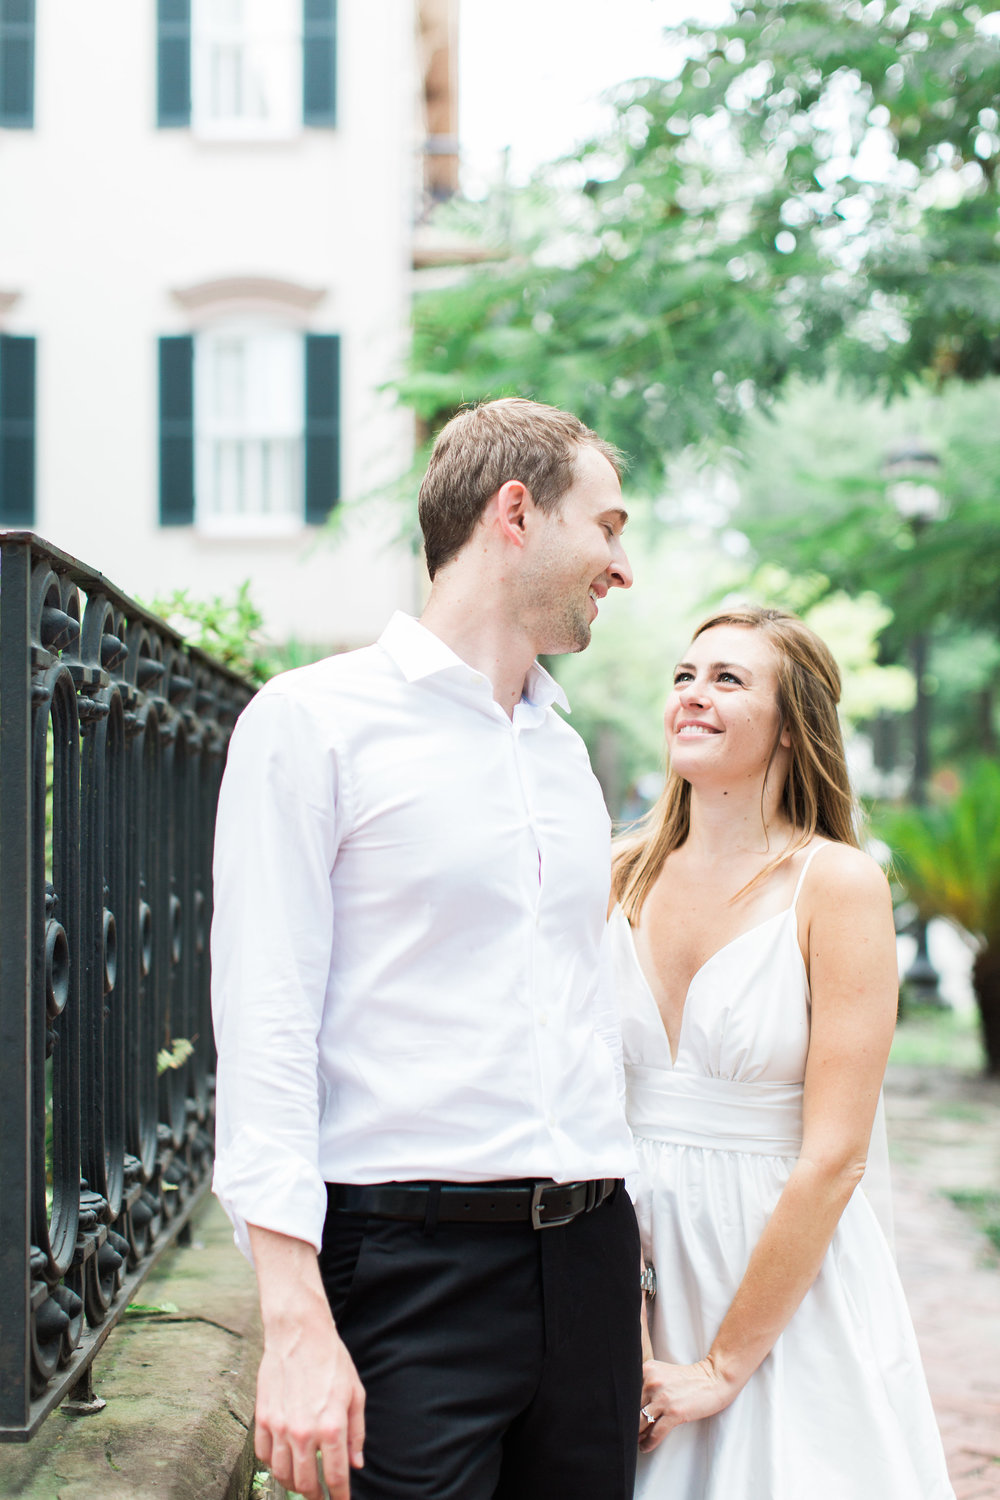 apt-b-photography-kate-mcdonald-mccants-forsyth-park-elopement-forsyth-fountain-rainy-wedding-day-savannah-florist-ivory-and-beau-bridal-boutique-savannah-wedding-gowns-savannah-weddings-savannah-wedding-planner-adele-amelia-gold-veil-10.jpg